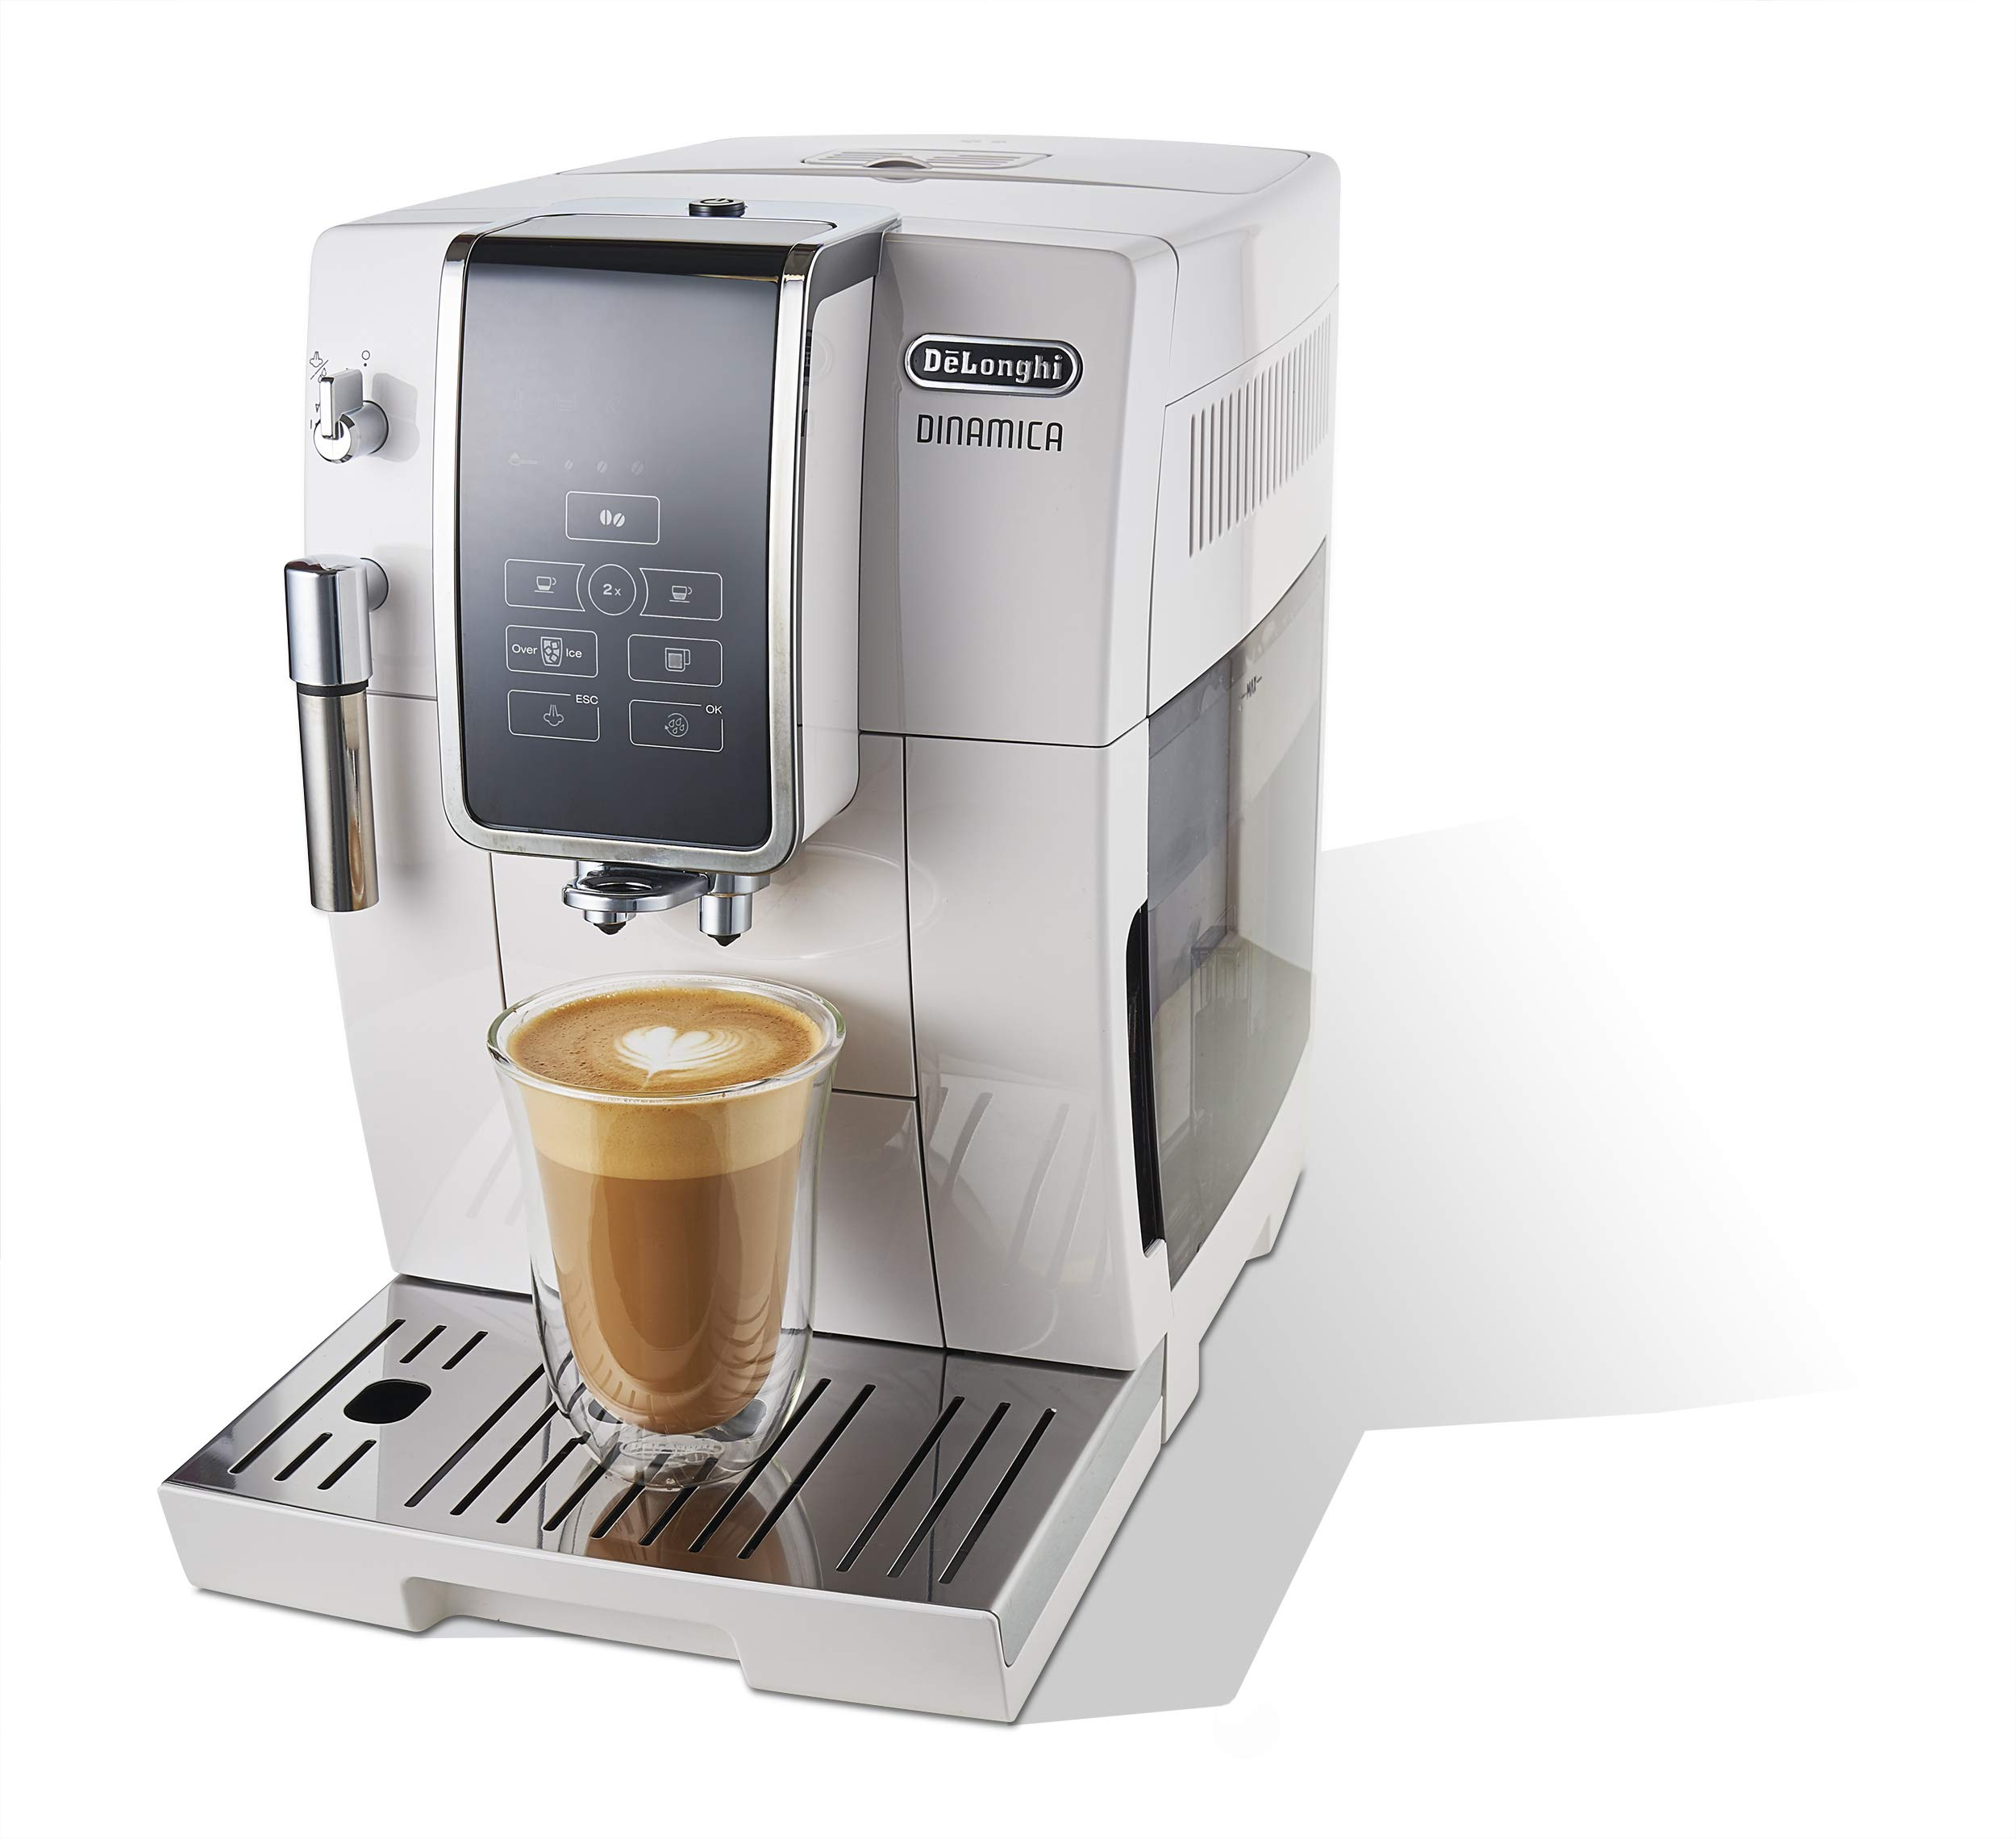 De'Longhi Dinamica Automatic Coffee & Espresso Machine TrueBrew (Iced-Coffee), Burr Grinder + Descaling Solution, Cleaning Brush & Bean Shaped Icecube Tray, White, ECAM35020W by De'Longhi